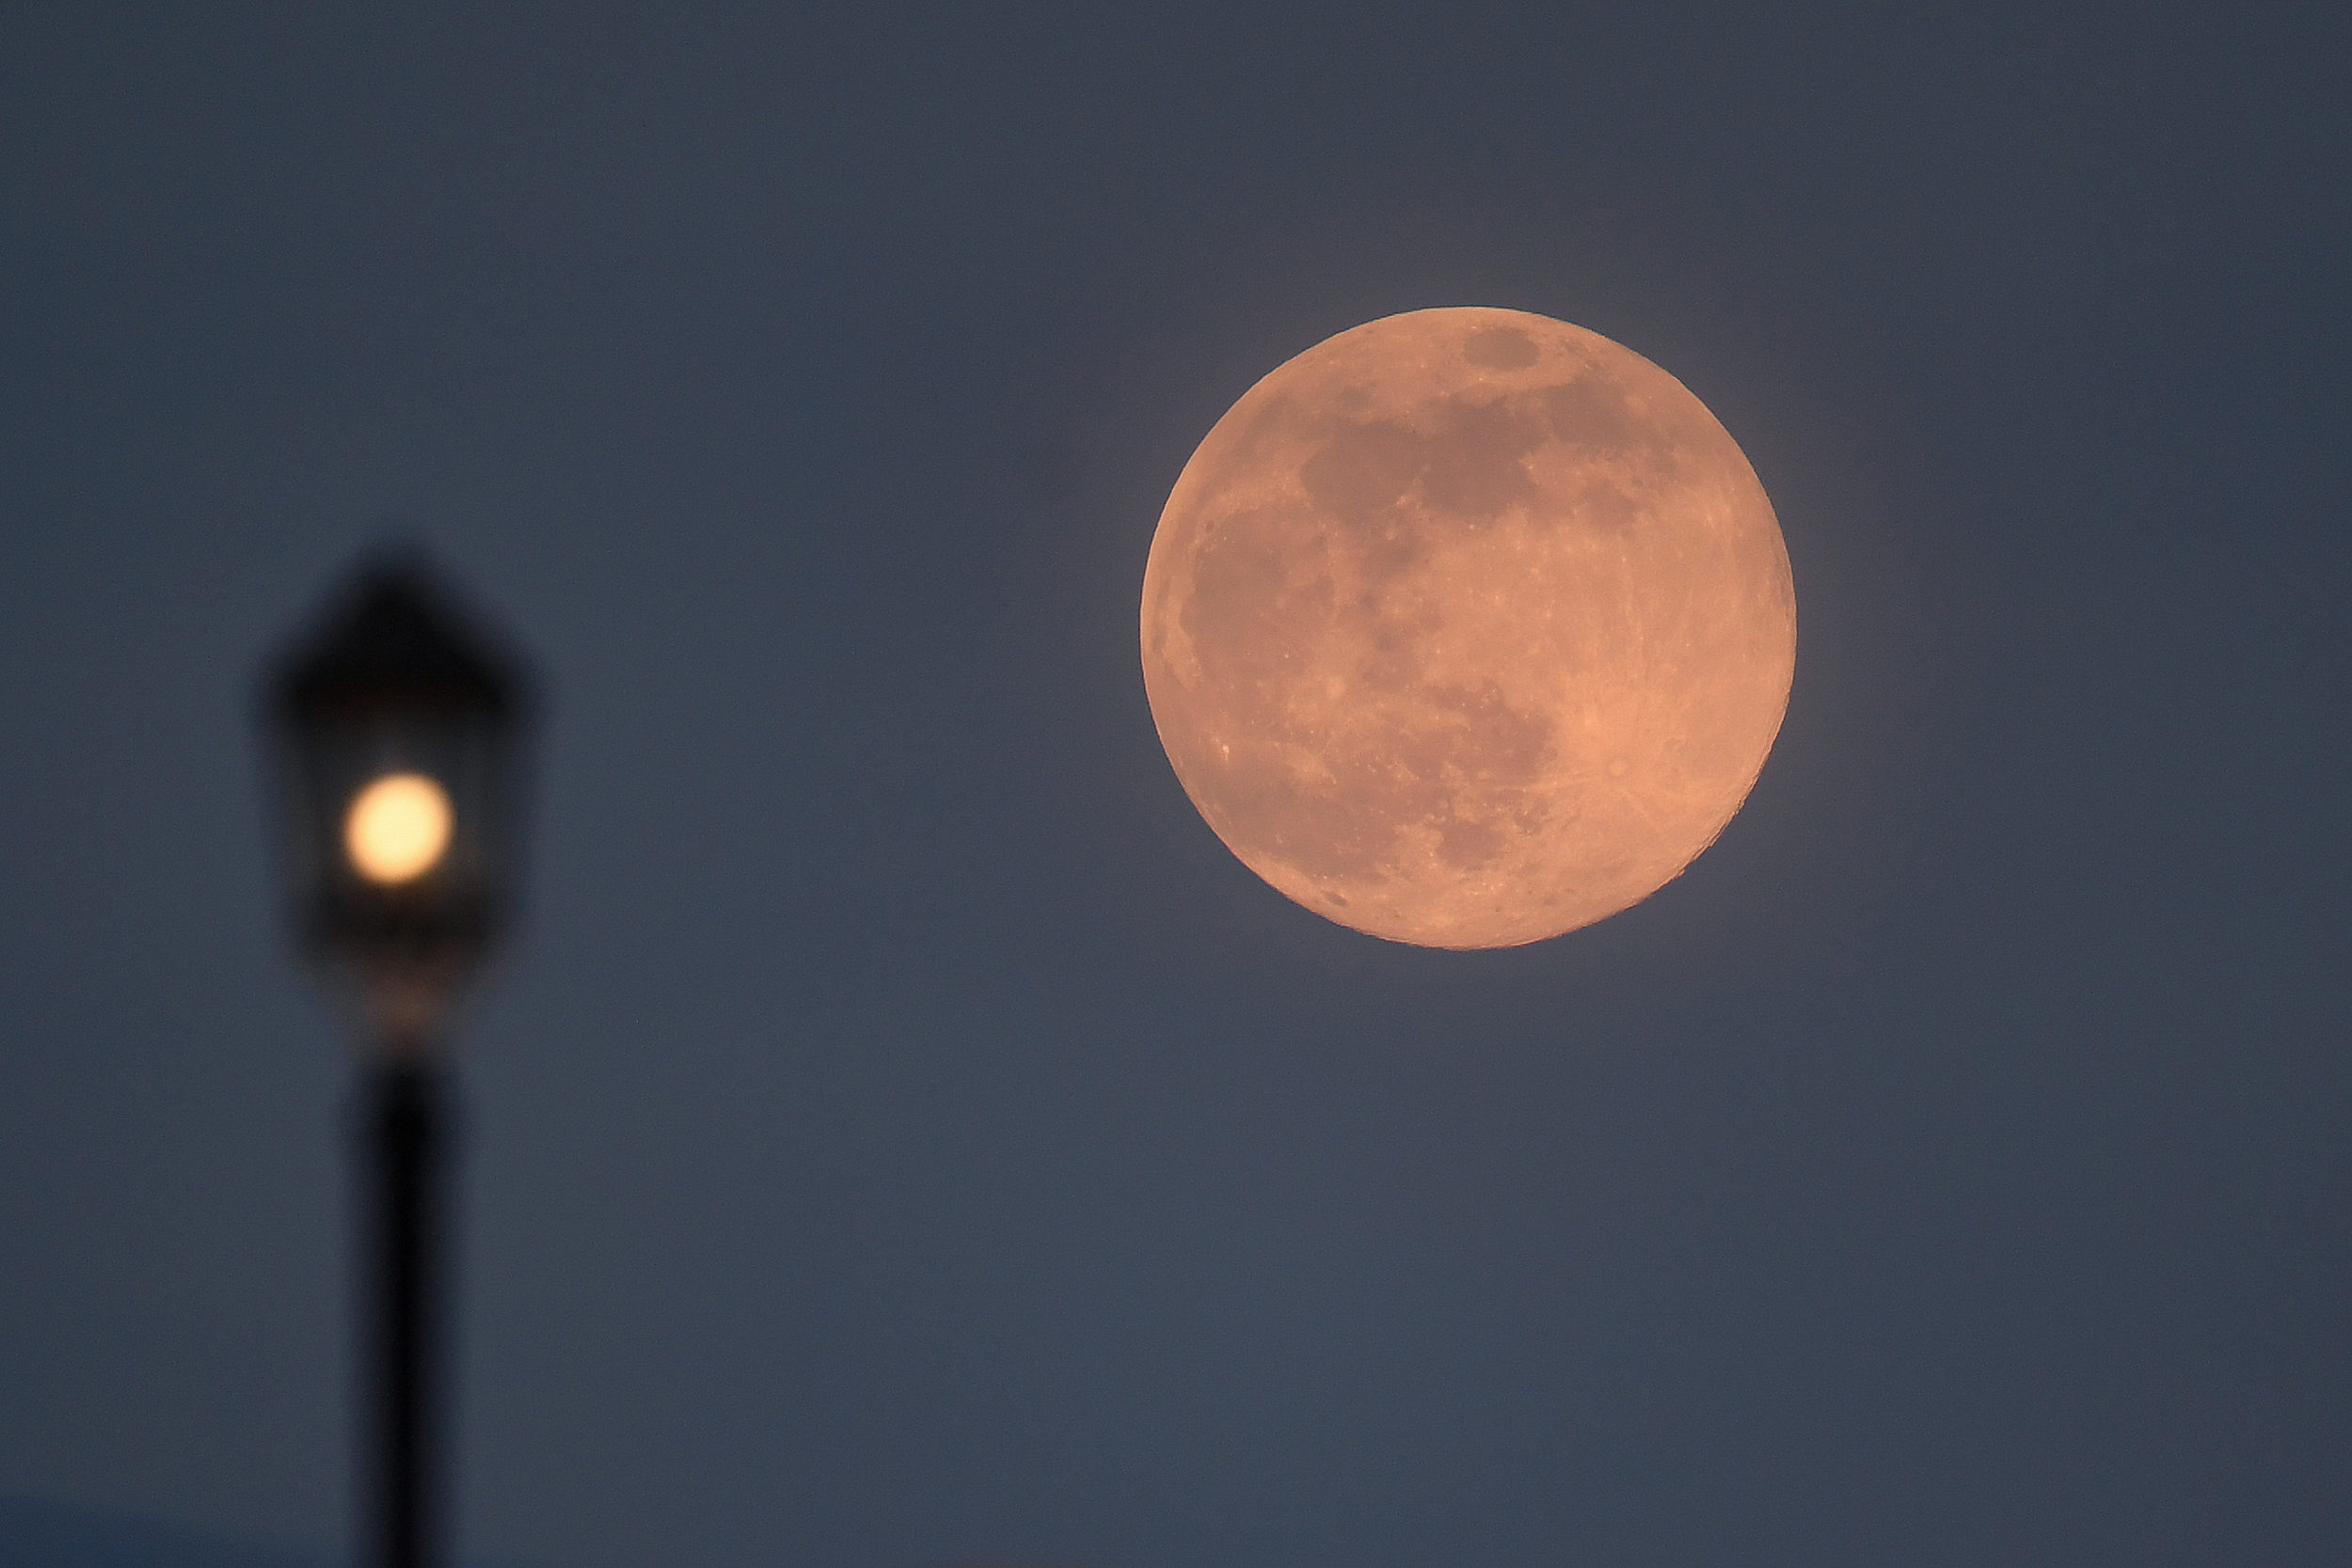 A pink supermoon rises over a pier in Worthing, United Kingdom in 2020.